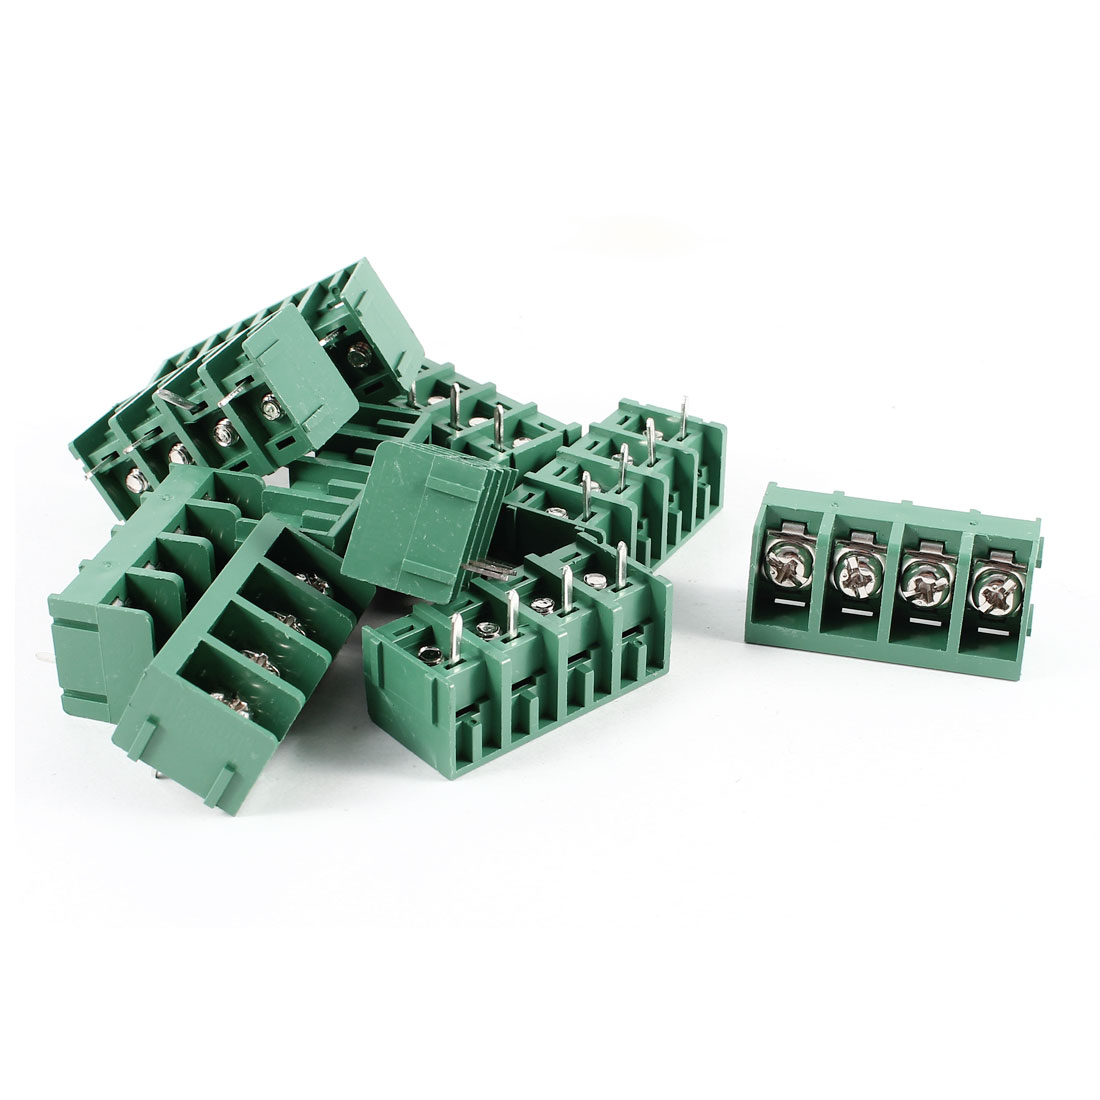 10 Pcs Green HB9500-4P 4 Position 4Pin PCB Mount 9.5mm Pitch Screw Terminal Barrier Blocks 300V 30A